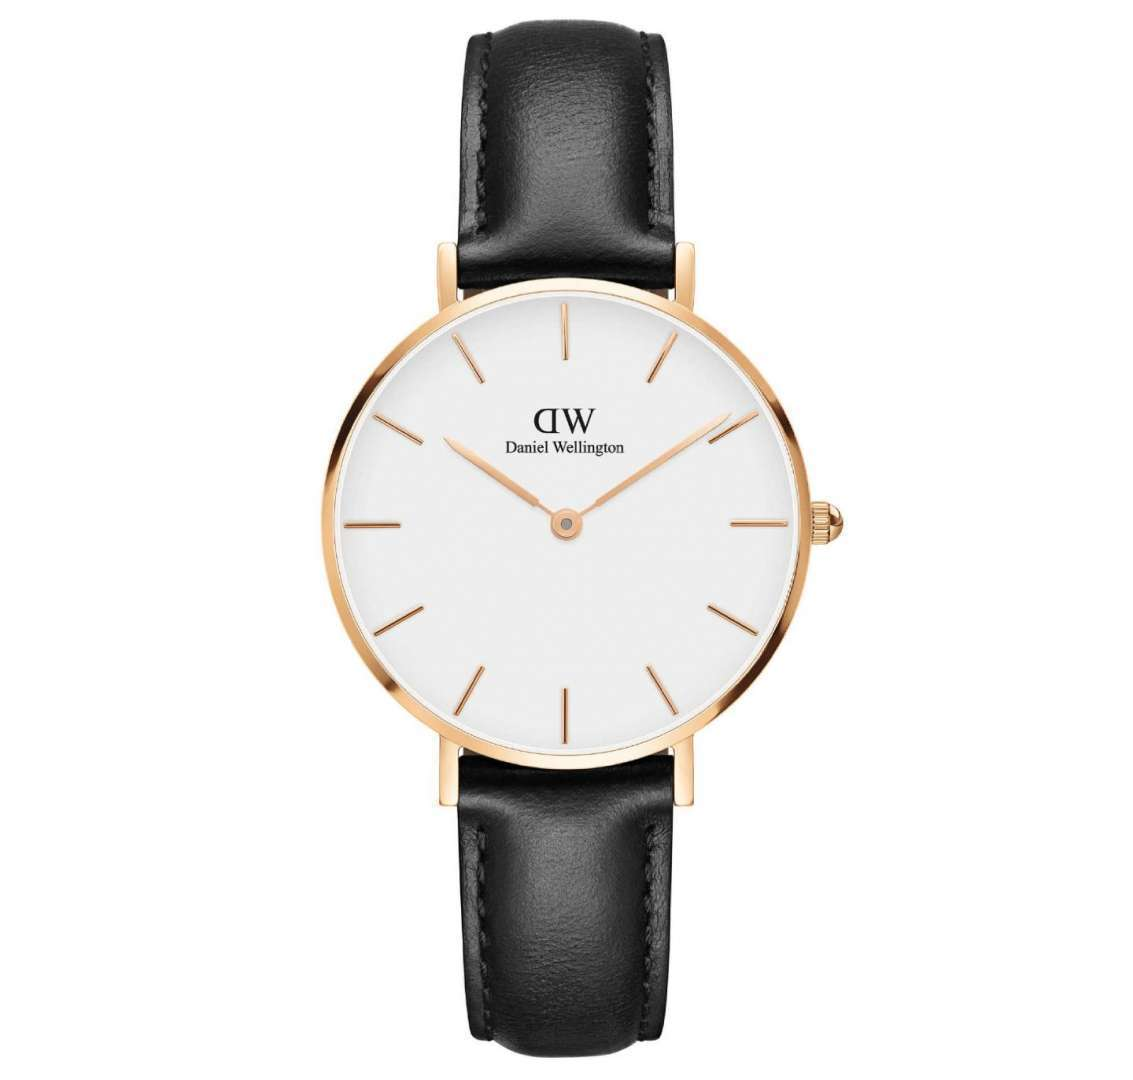 שעון יד אנלוגי daniel wellington DW00100174 דניאל וולינגטון